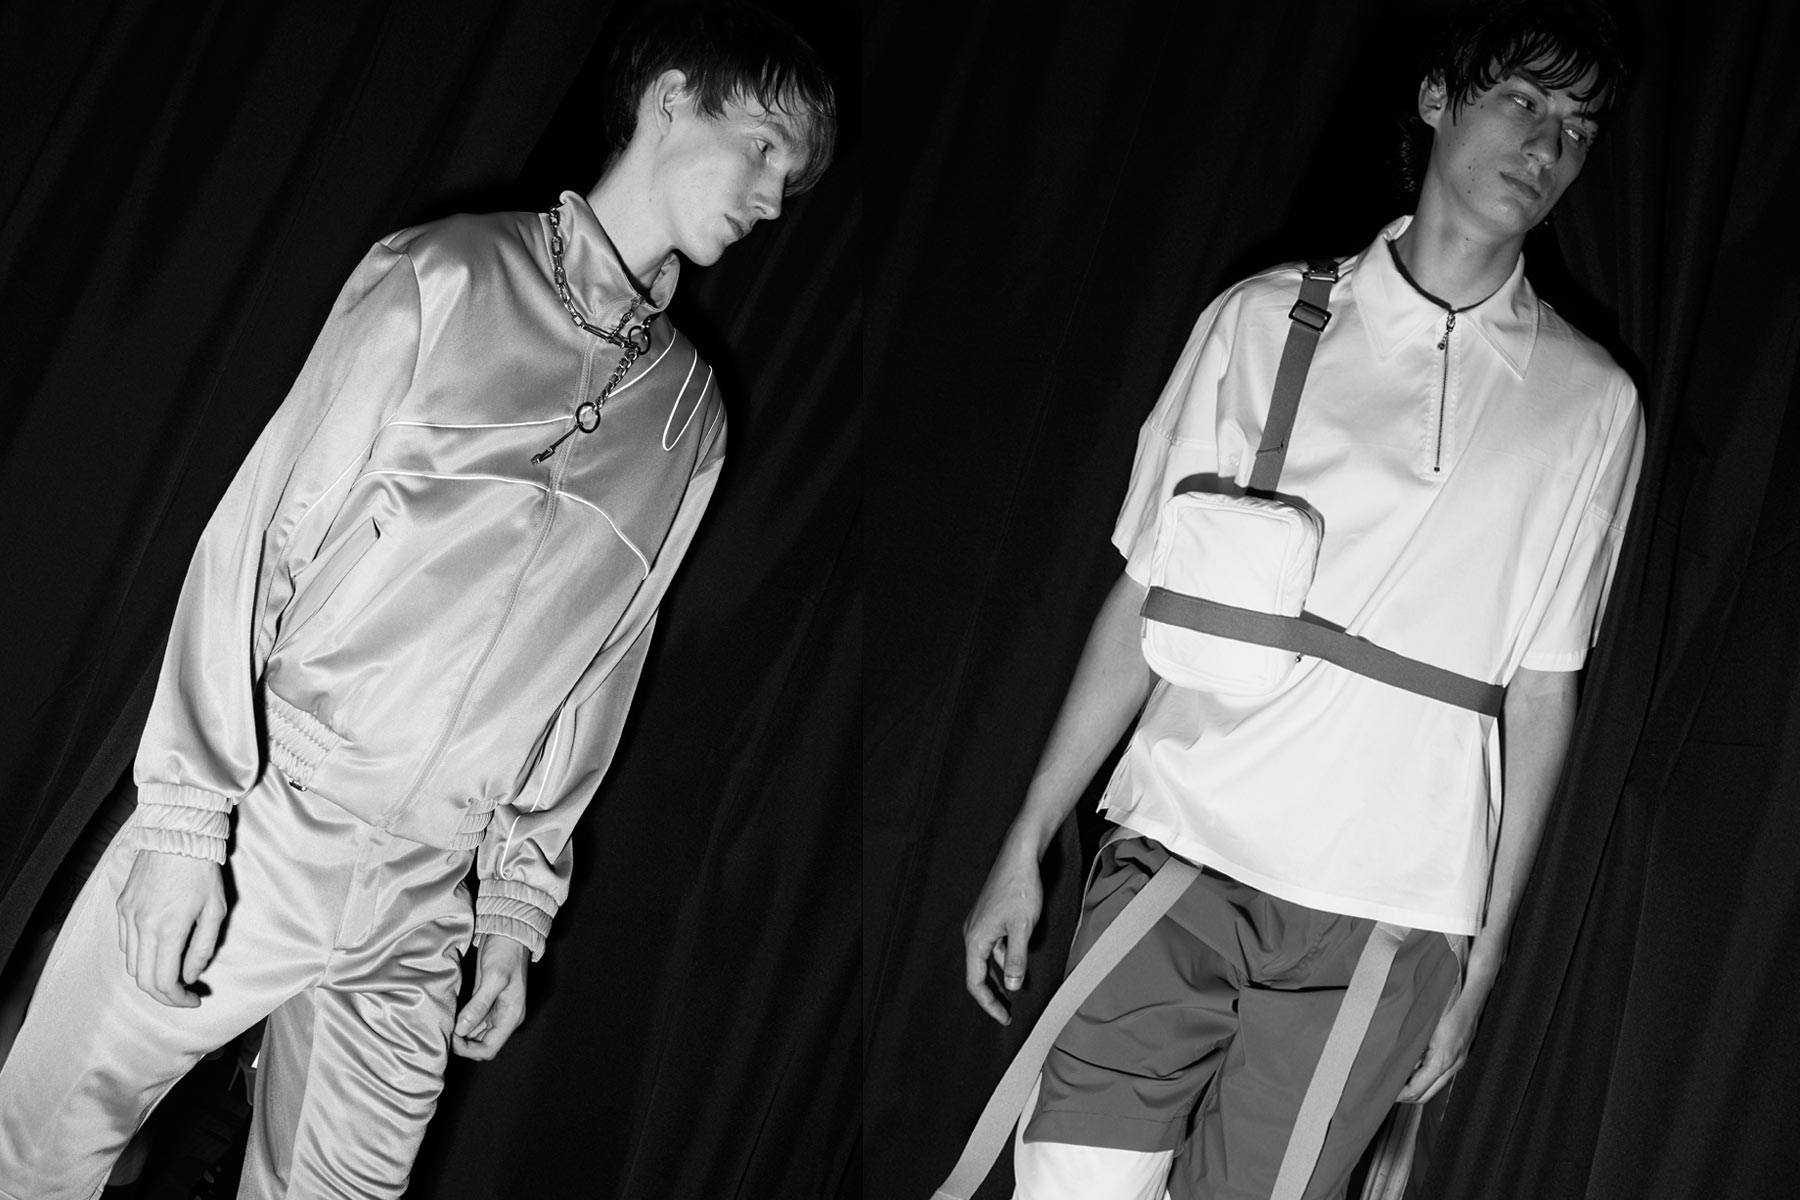 Male models walk backstage at Private Policy for Spring/Summer 2020. Photography by Alexander Thompson for Ponyboy magazine.